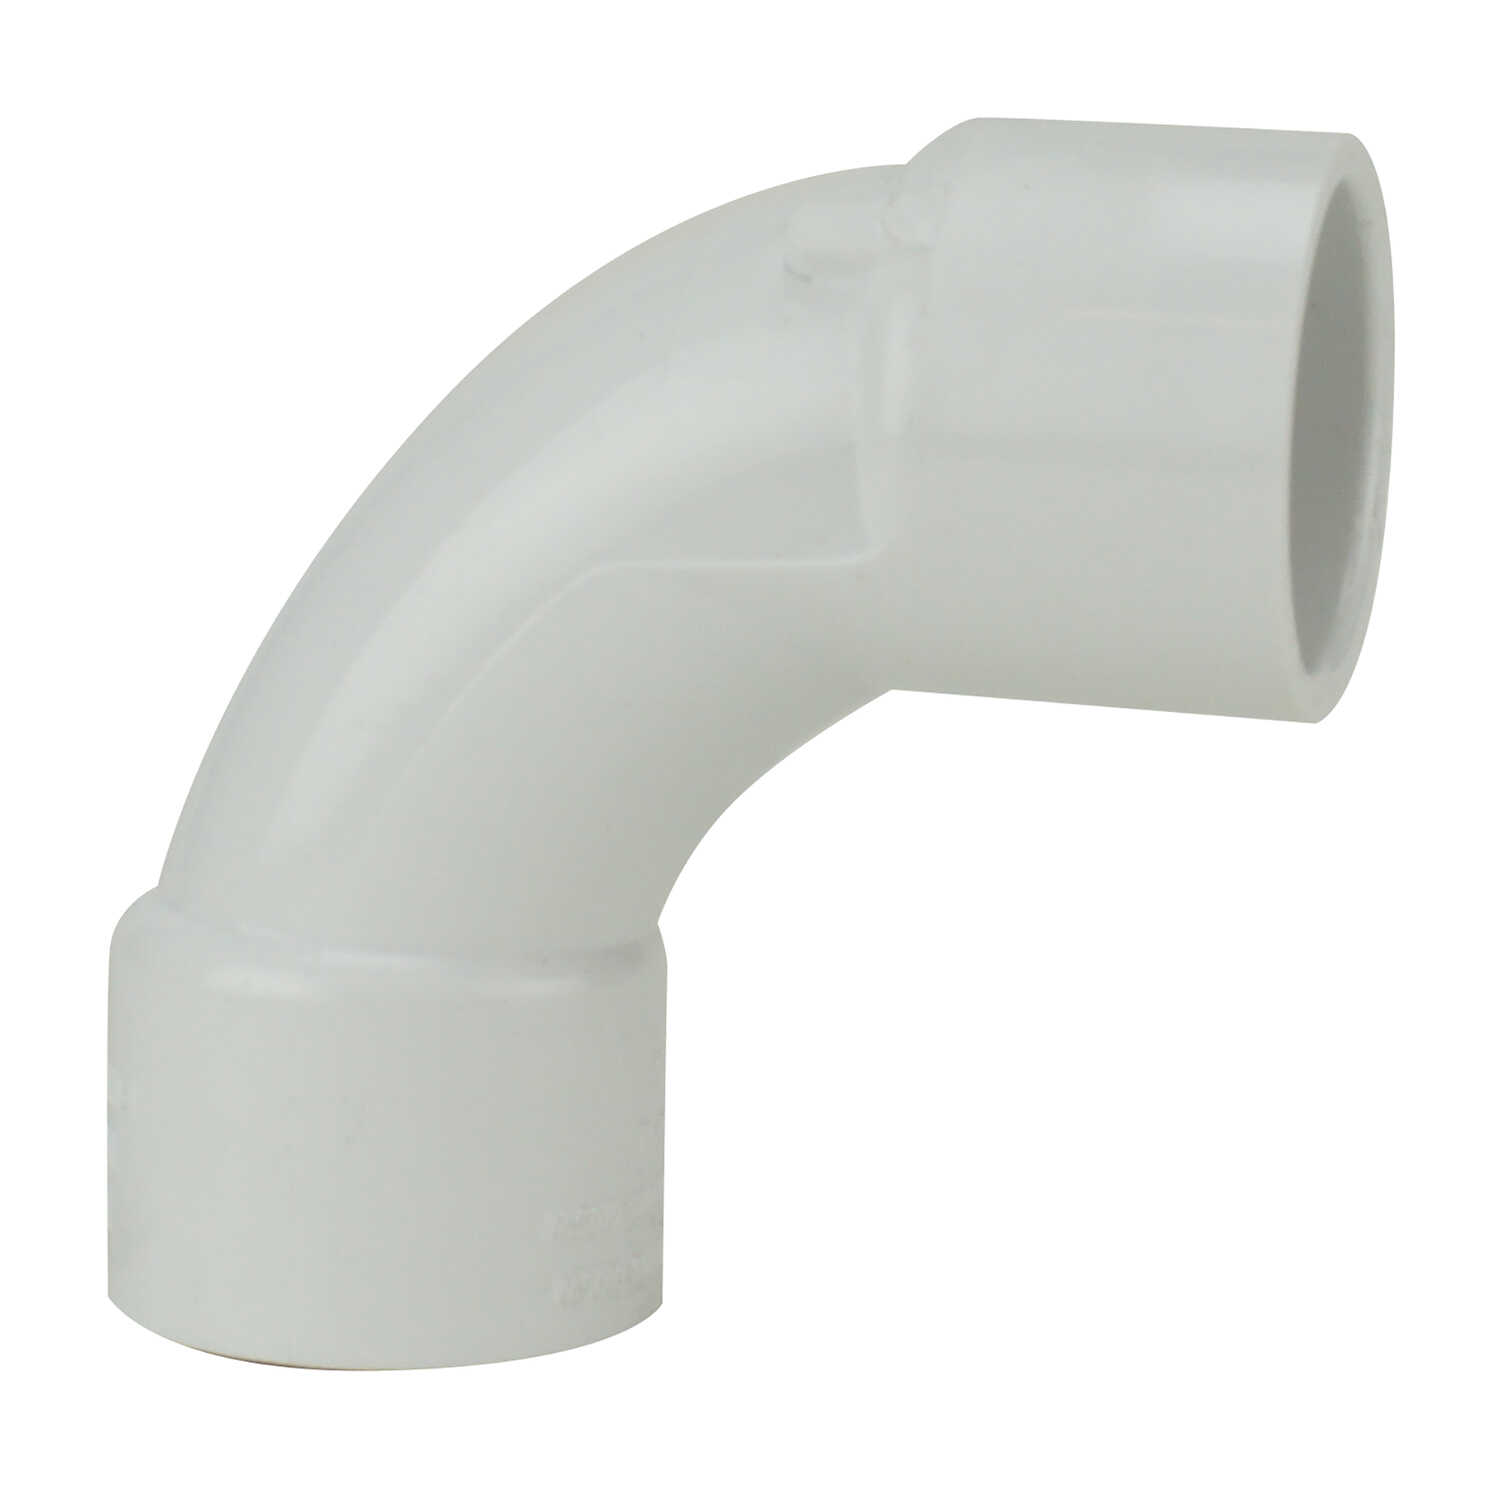 Lasco  Schedule 40  1 in. Slip   x 1 in. Dia. Slip  PVC  Elbow